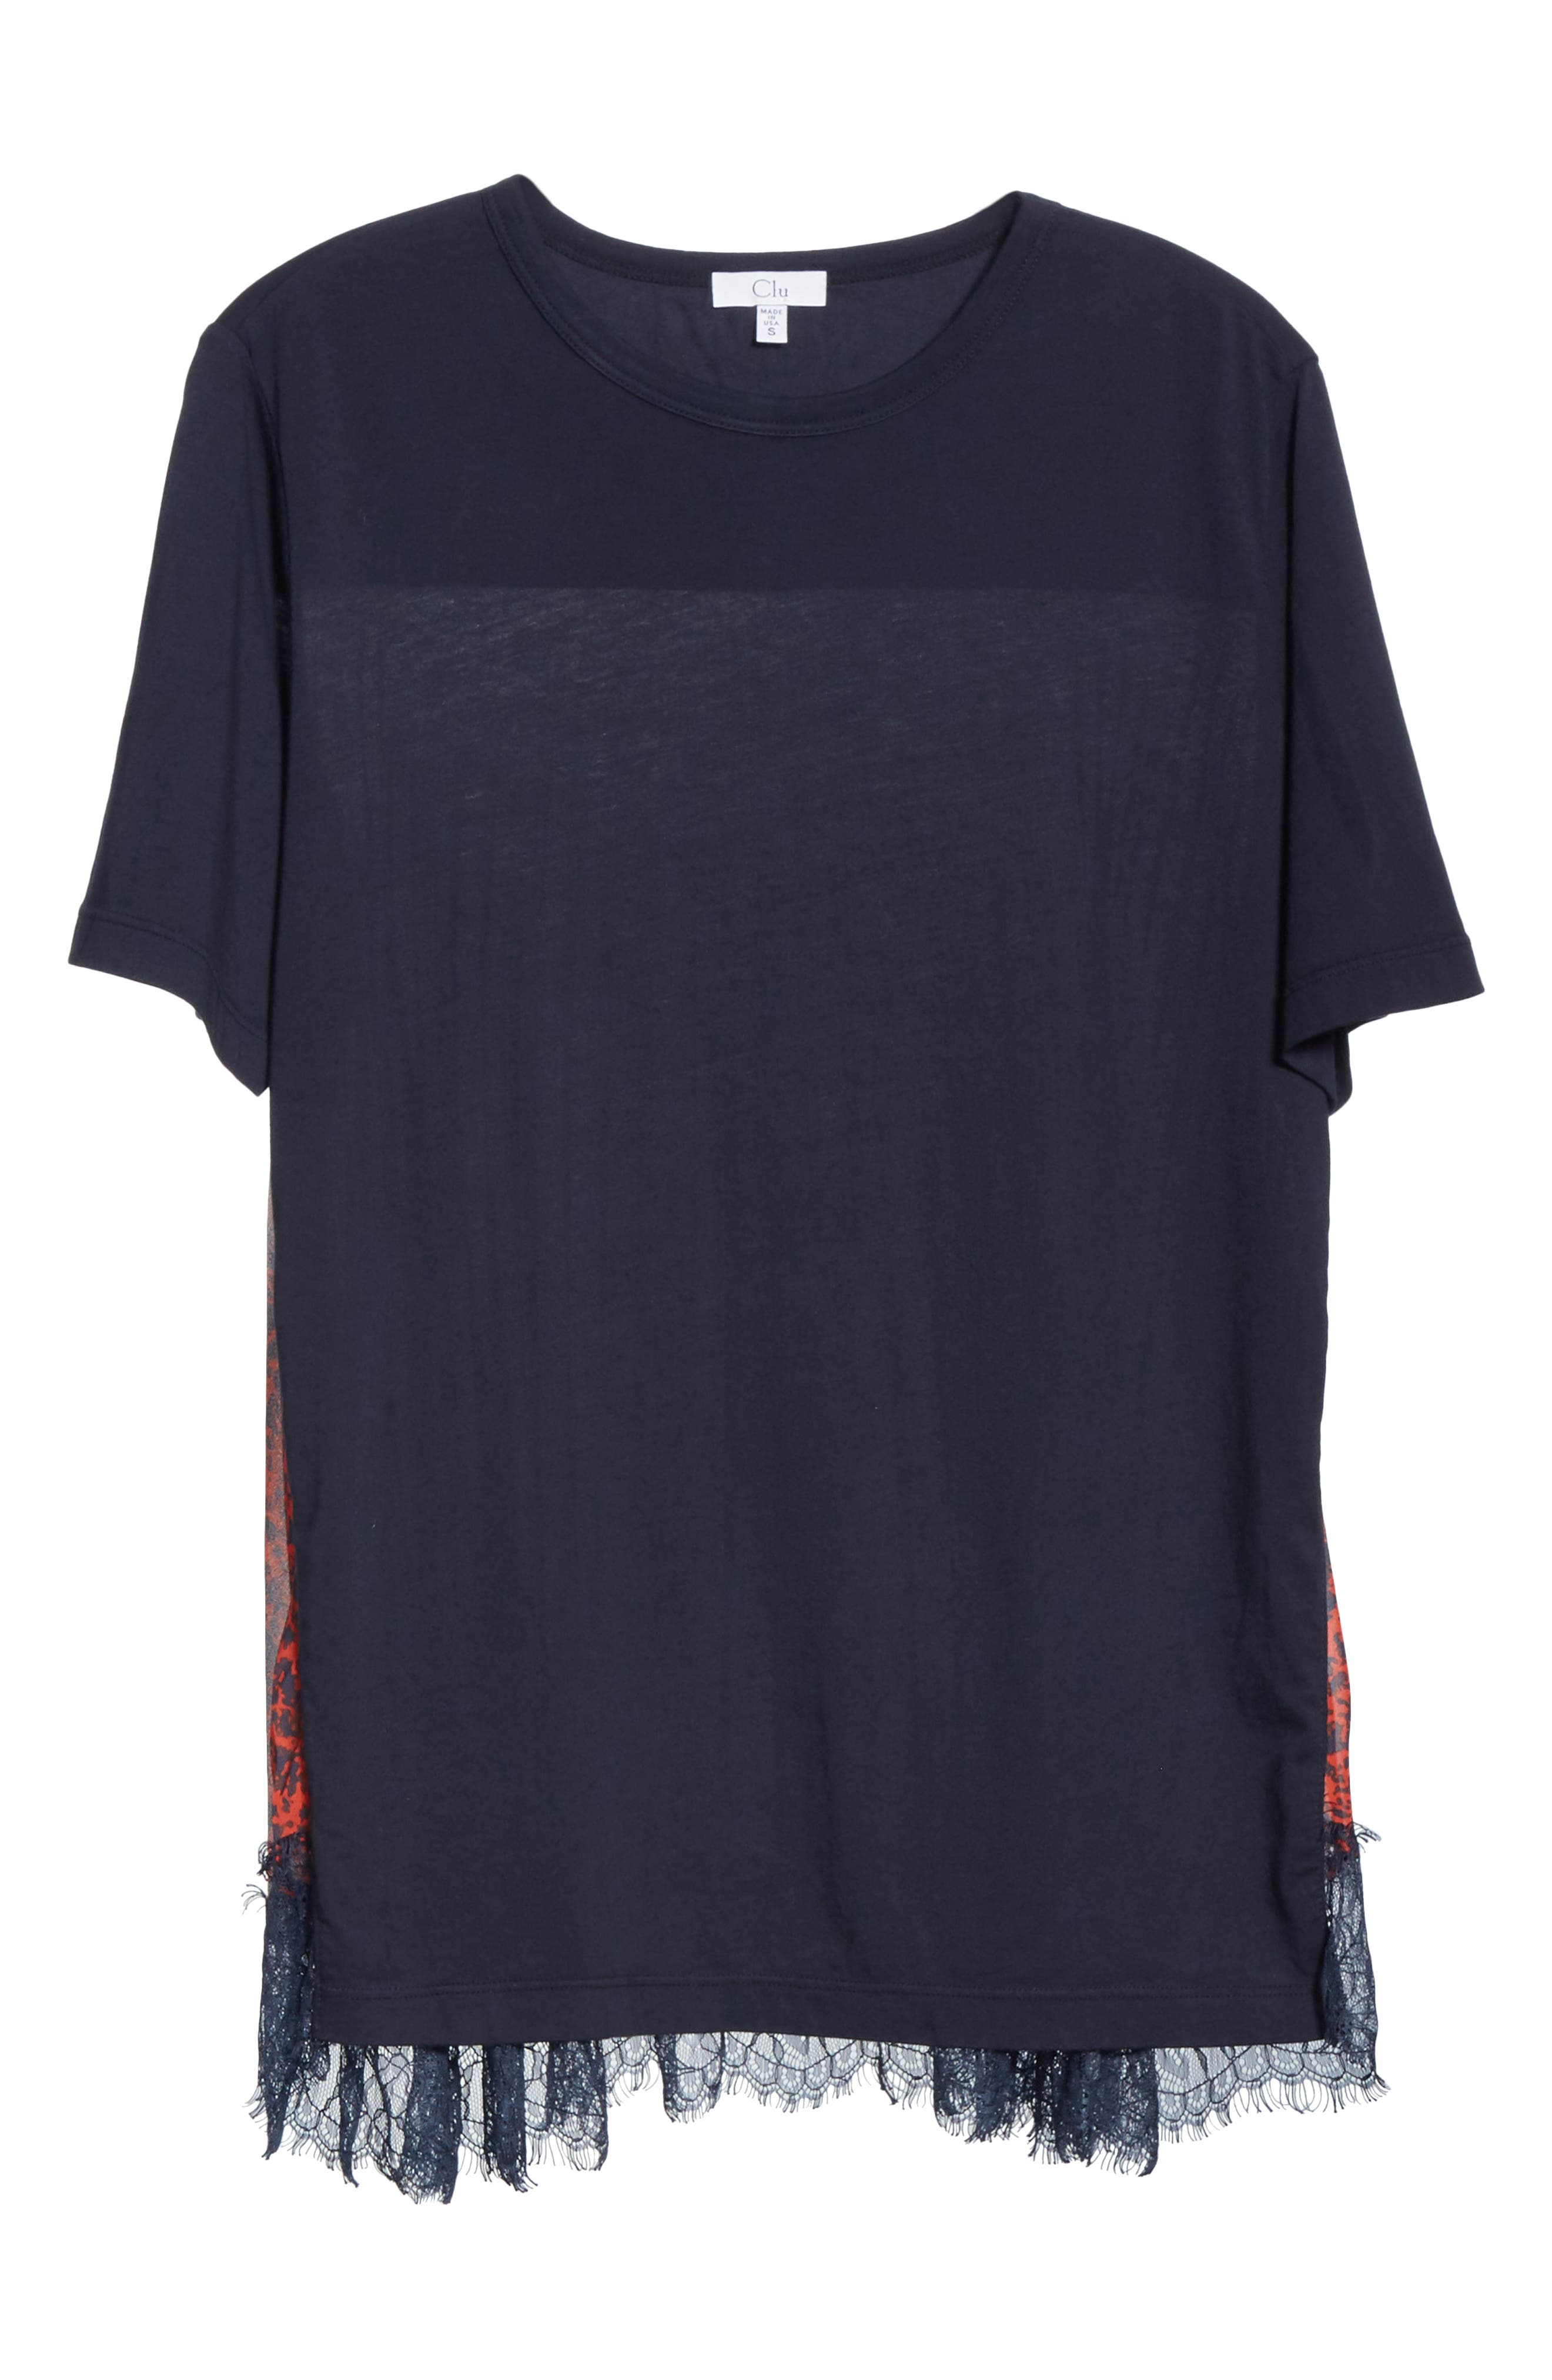 Mix Media Pleat Lace Detail Tee,                             Alternate thumbnail 6, color,                             NAVY